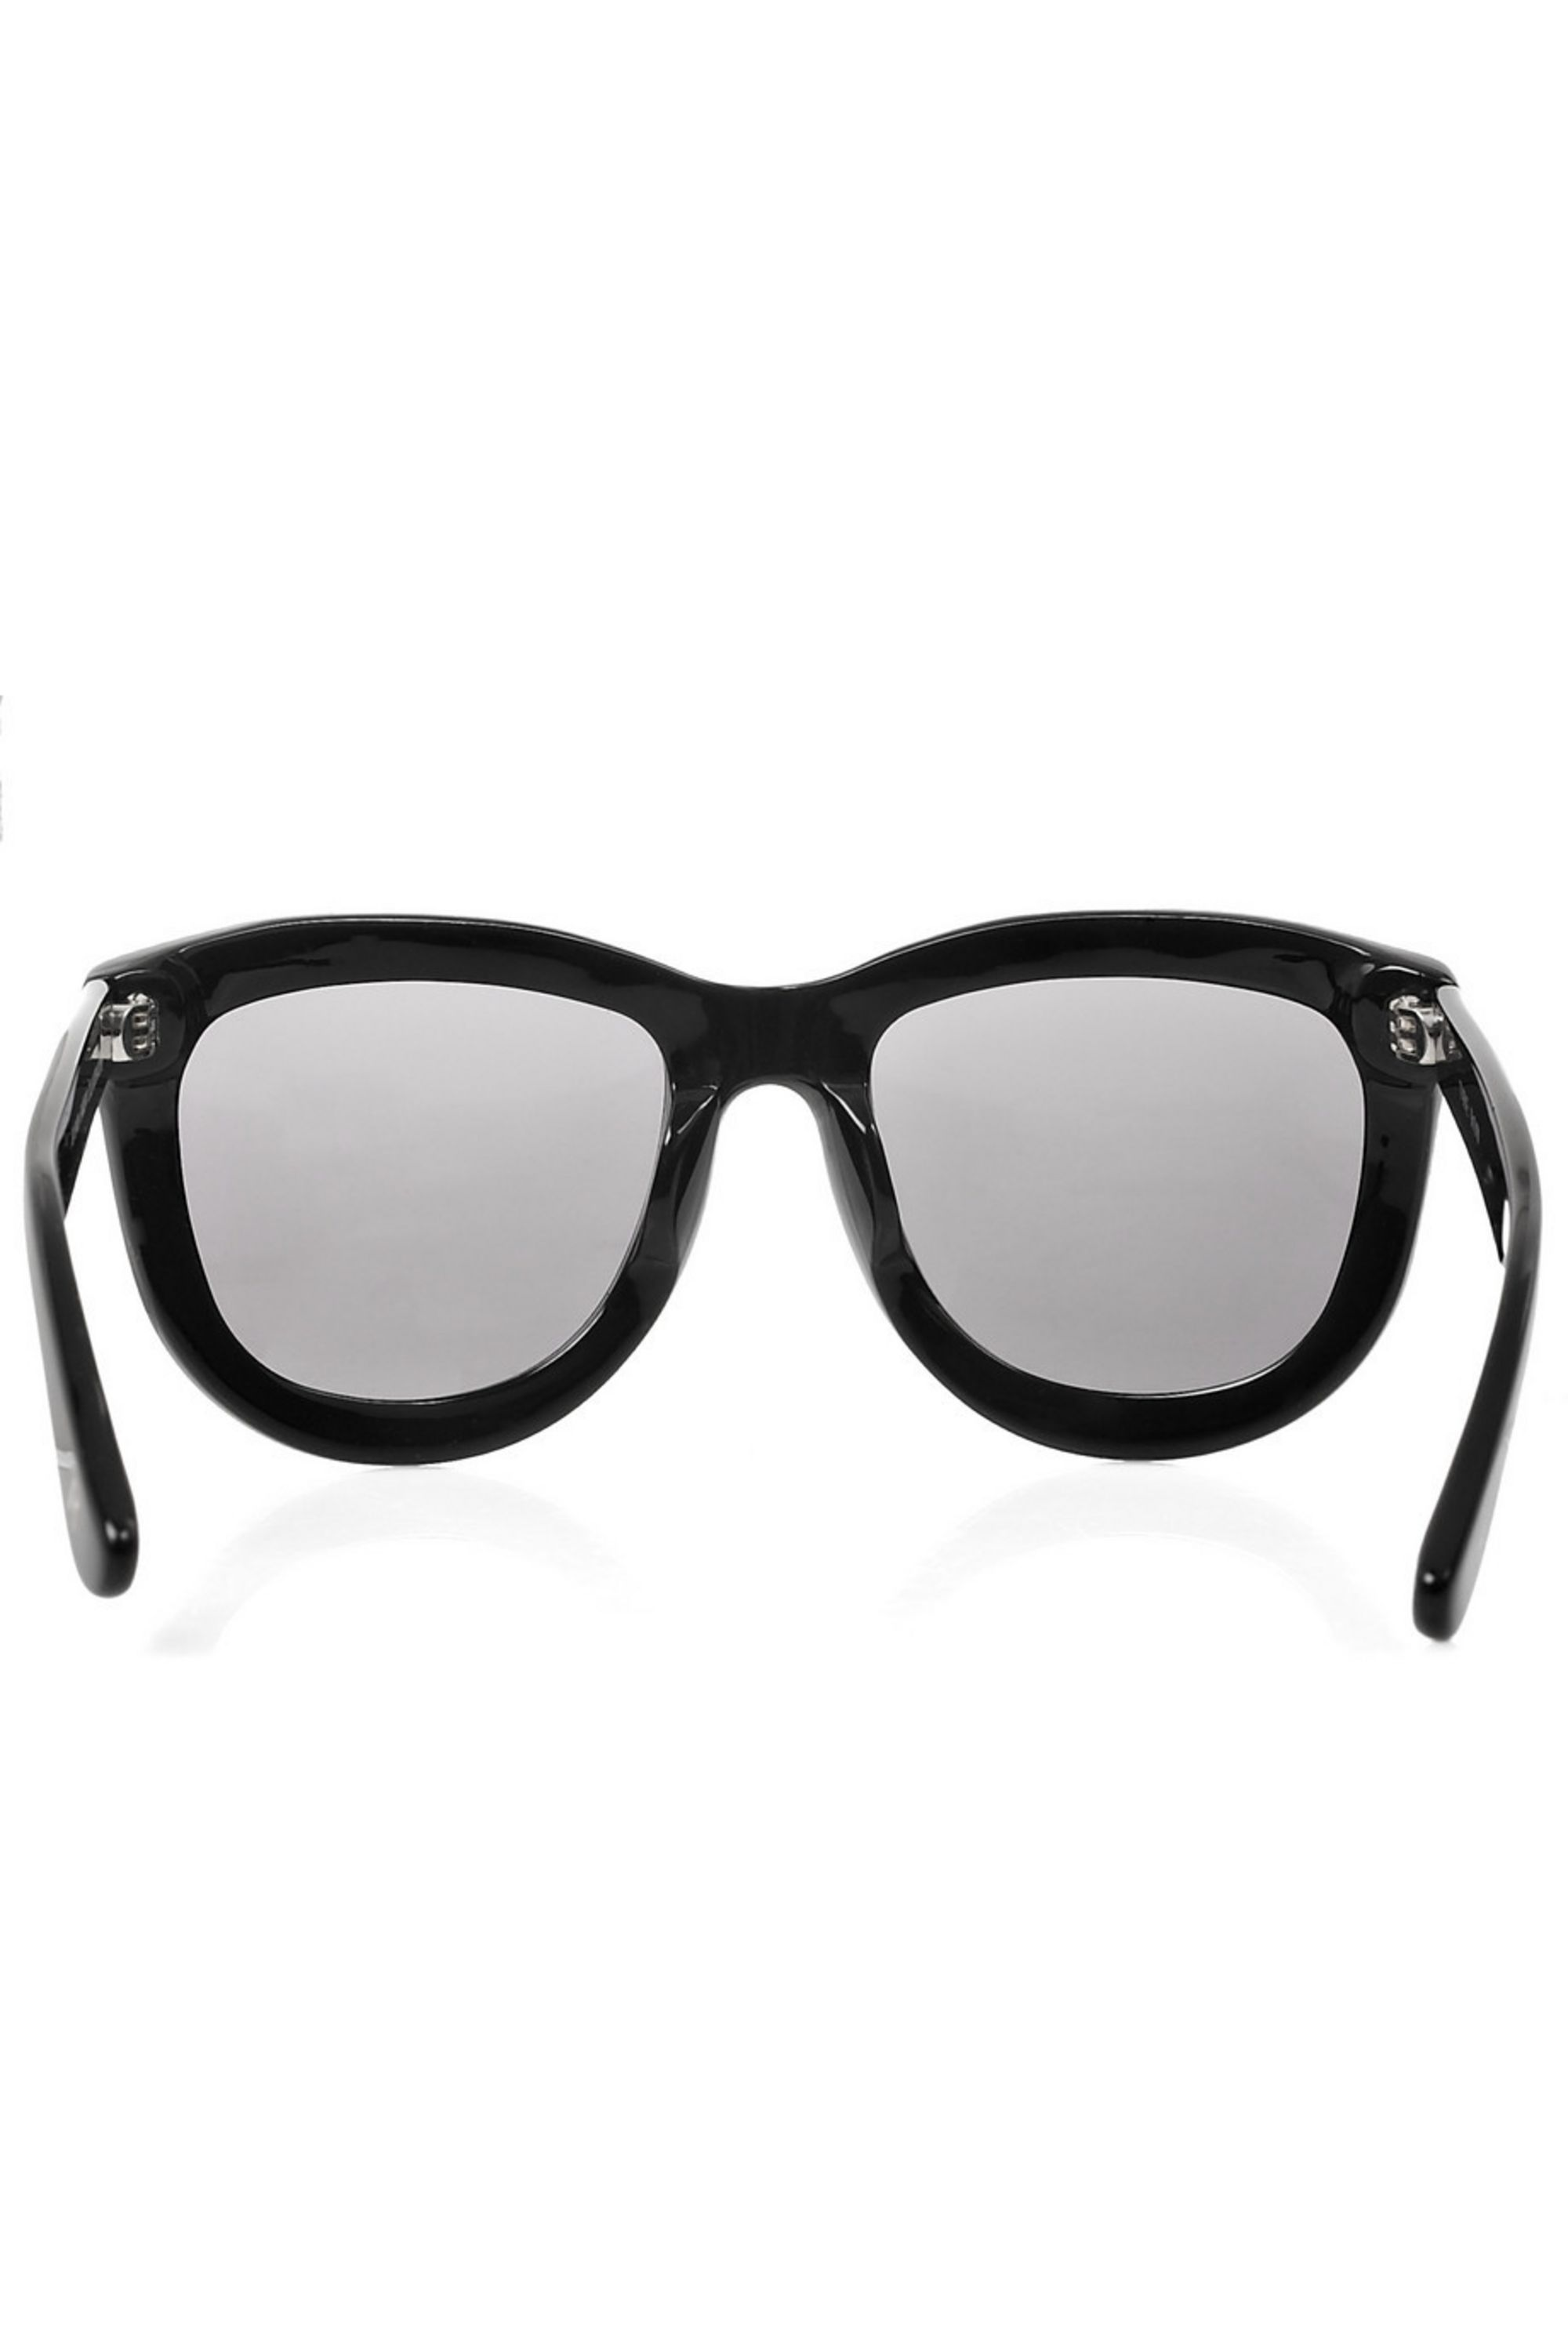 The Row Curved square-frame acetate sunglasses